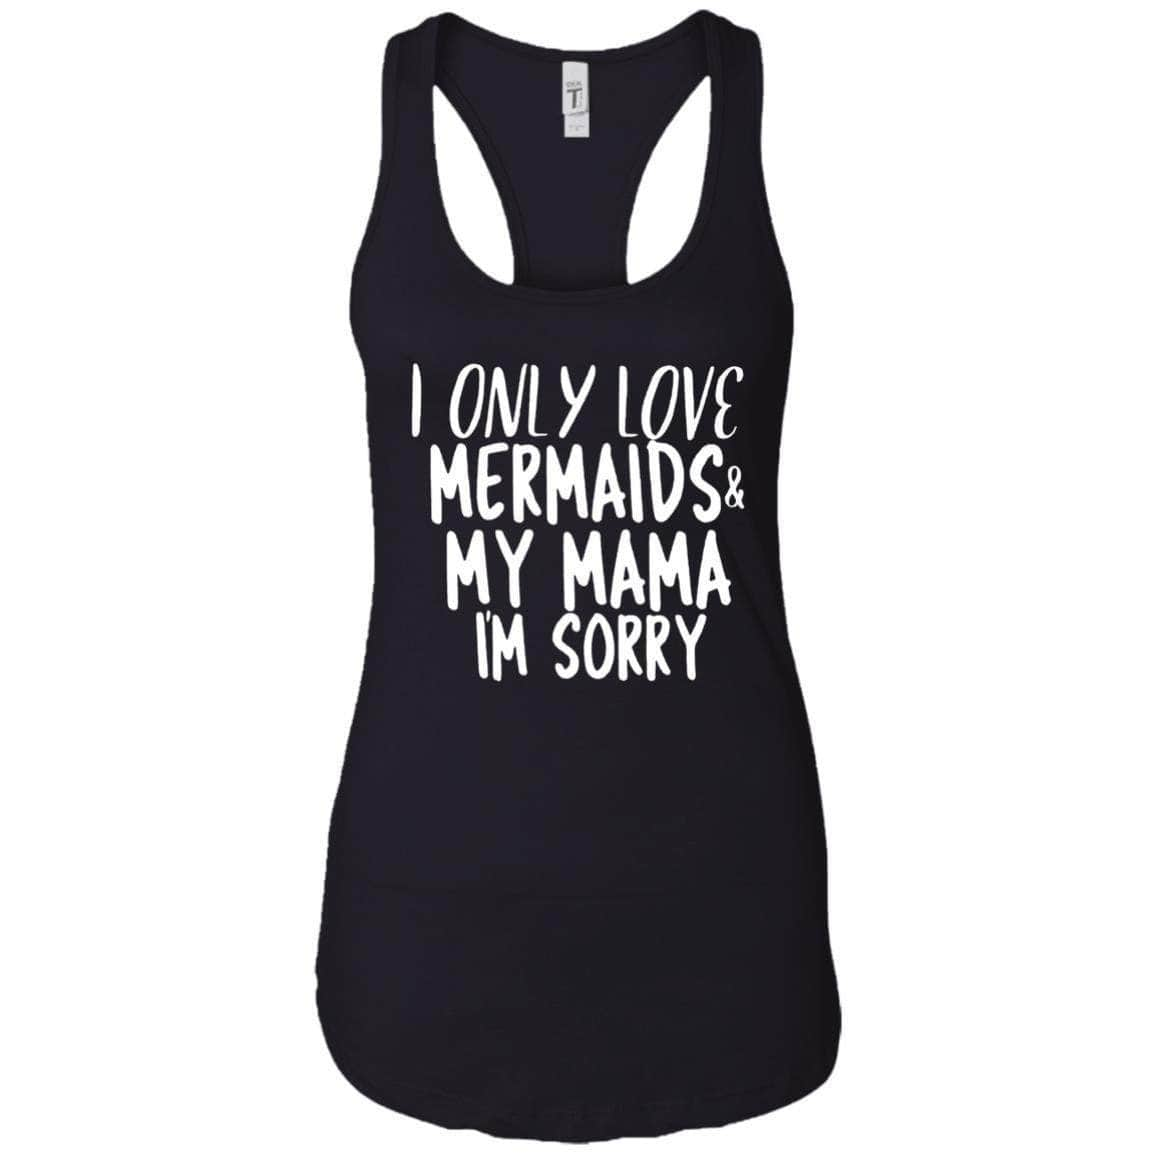 I ONLY LOVE MERMAIDS AND MY MAMA WOMEN'S RACERBACK TANK